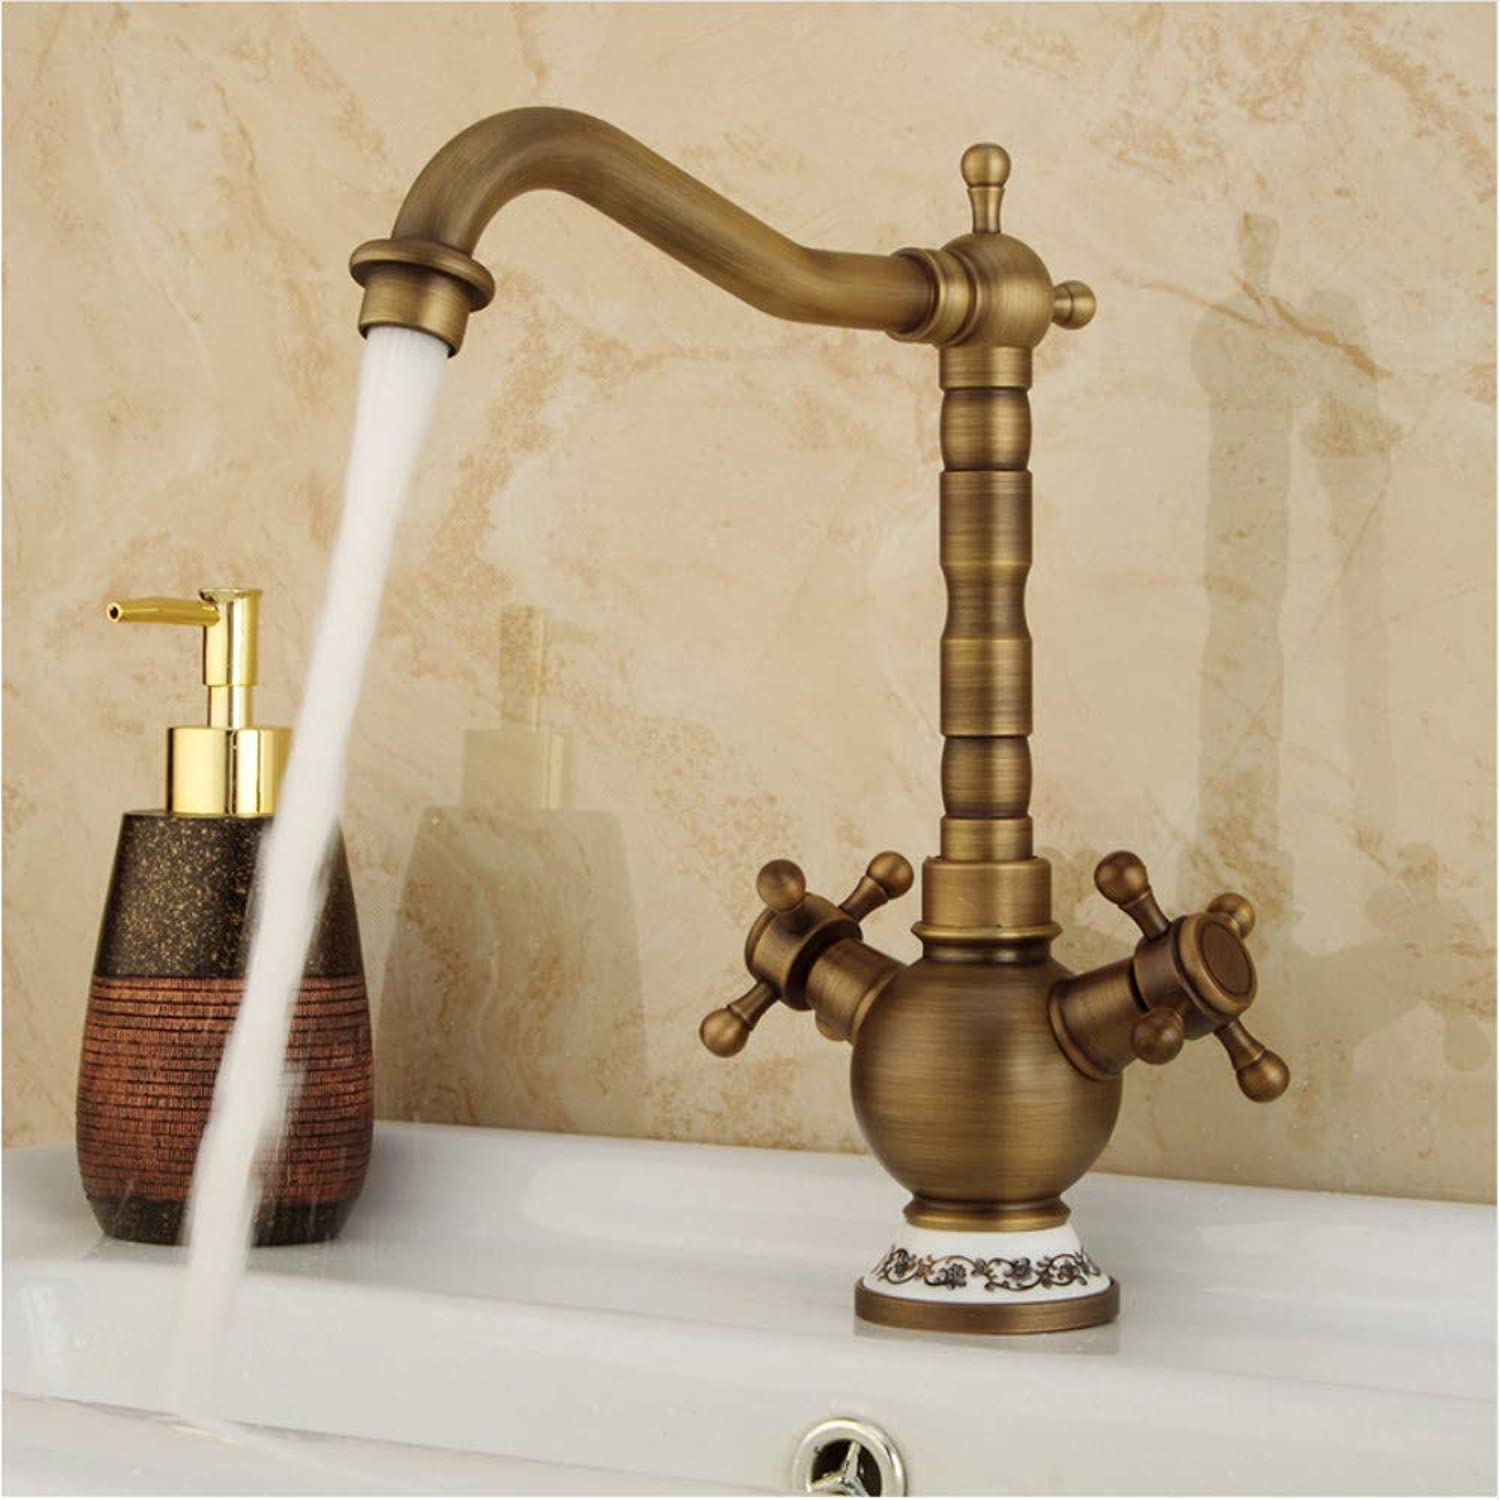 LLLYZZ Classic golden Bathroom Basin Faucet Mixer Toilet Faucet Double Handles Bath Brass Tap Hot Cold Water Mixer Control Deck Mount